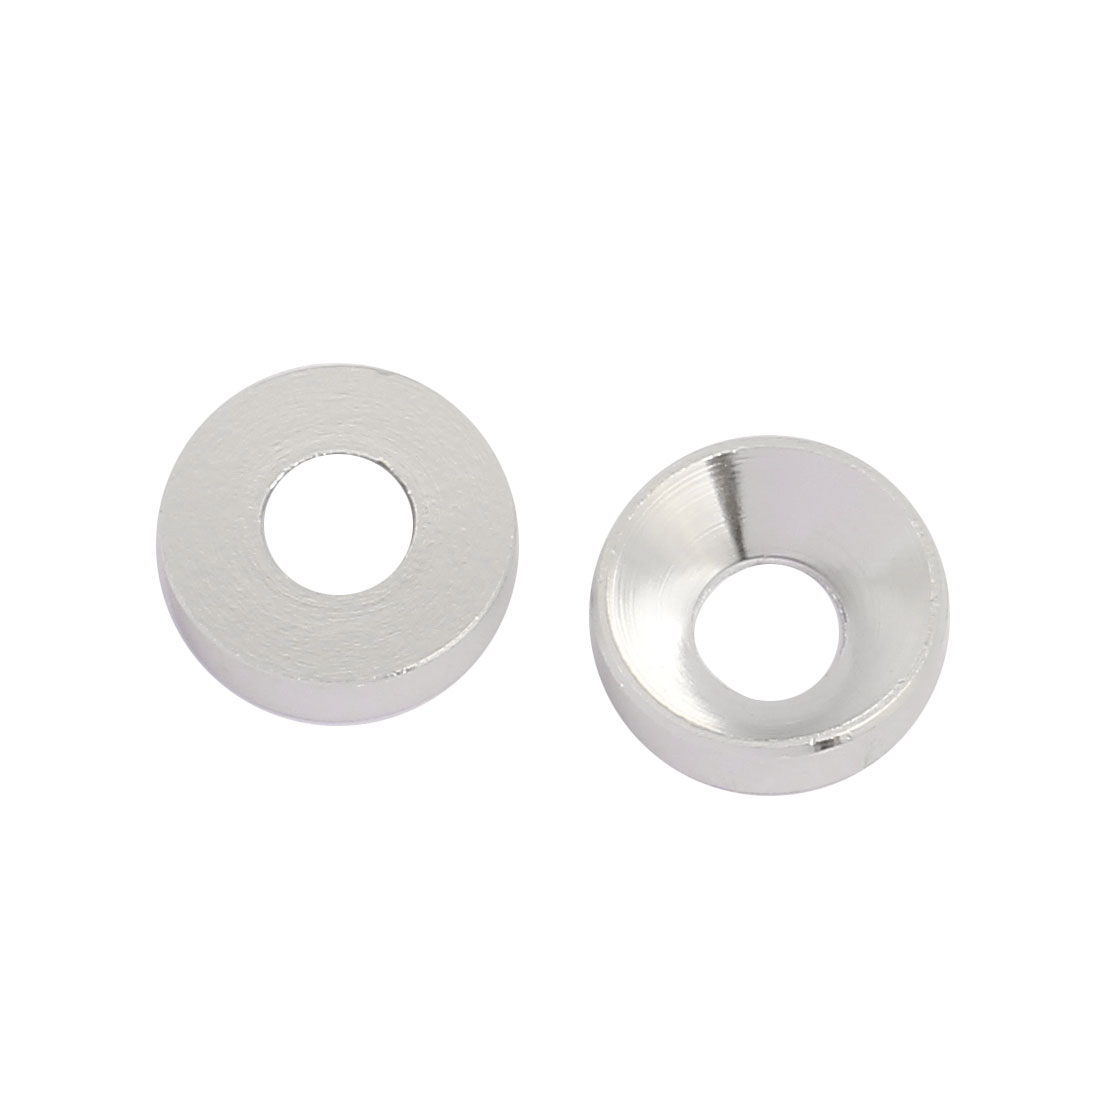 M5 Aluminum Alloy Silver Tone Countersunk Head Screw Spacer For RC DIY 2 Pcs